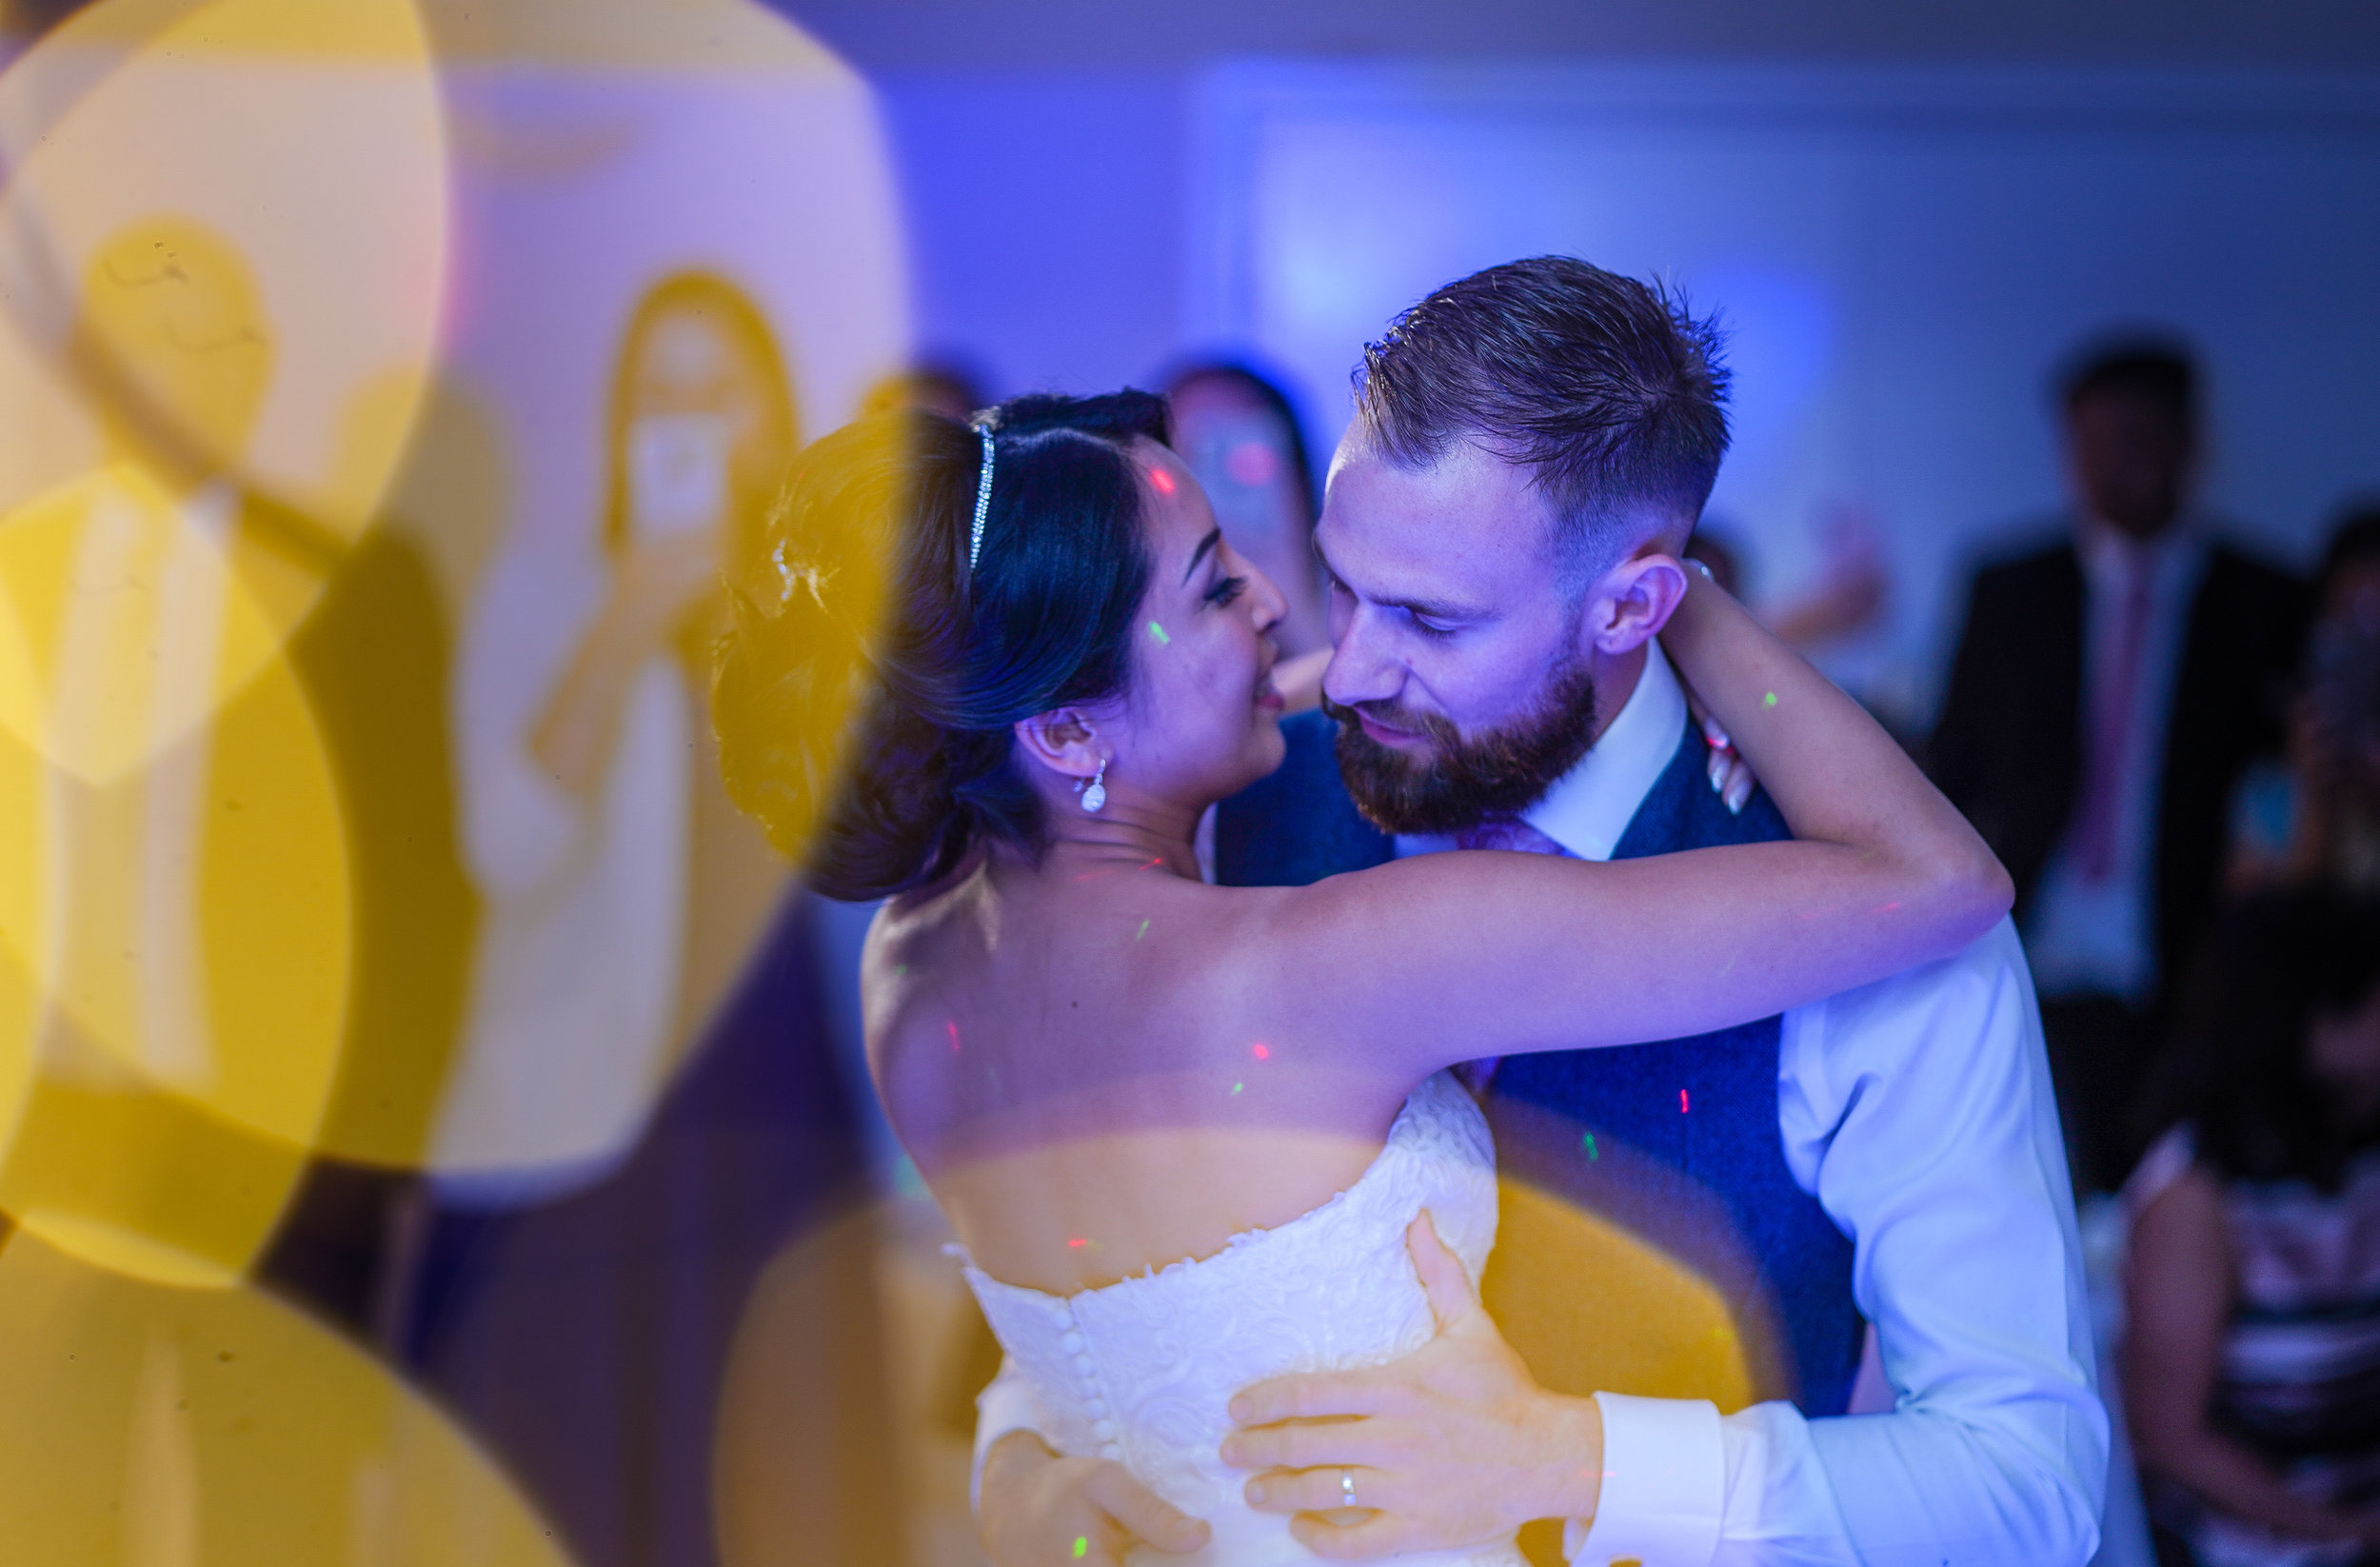 bedfordshire-london-wedding-photographer-videographer-68